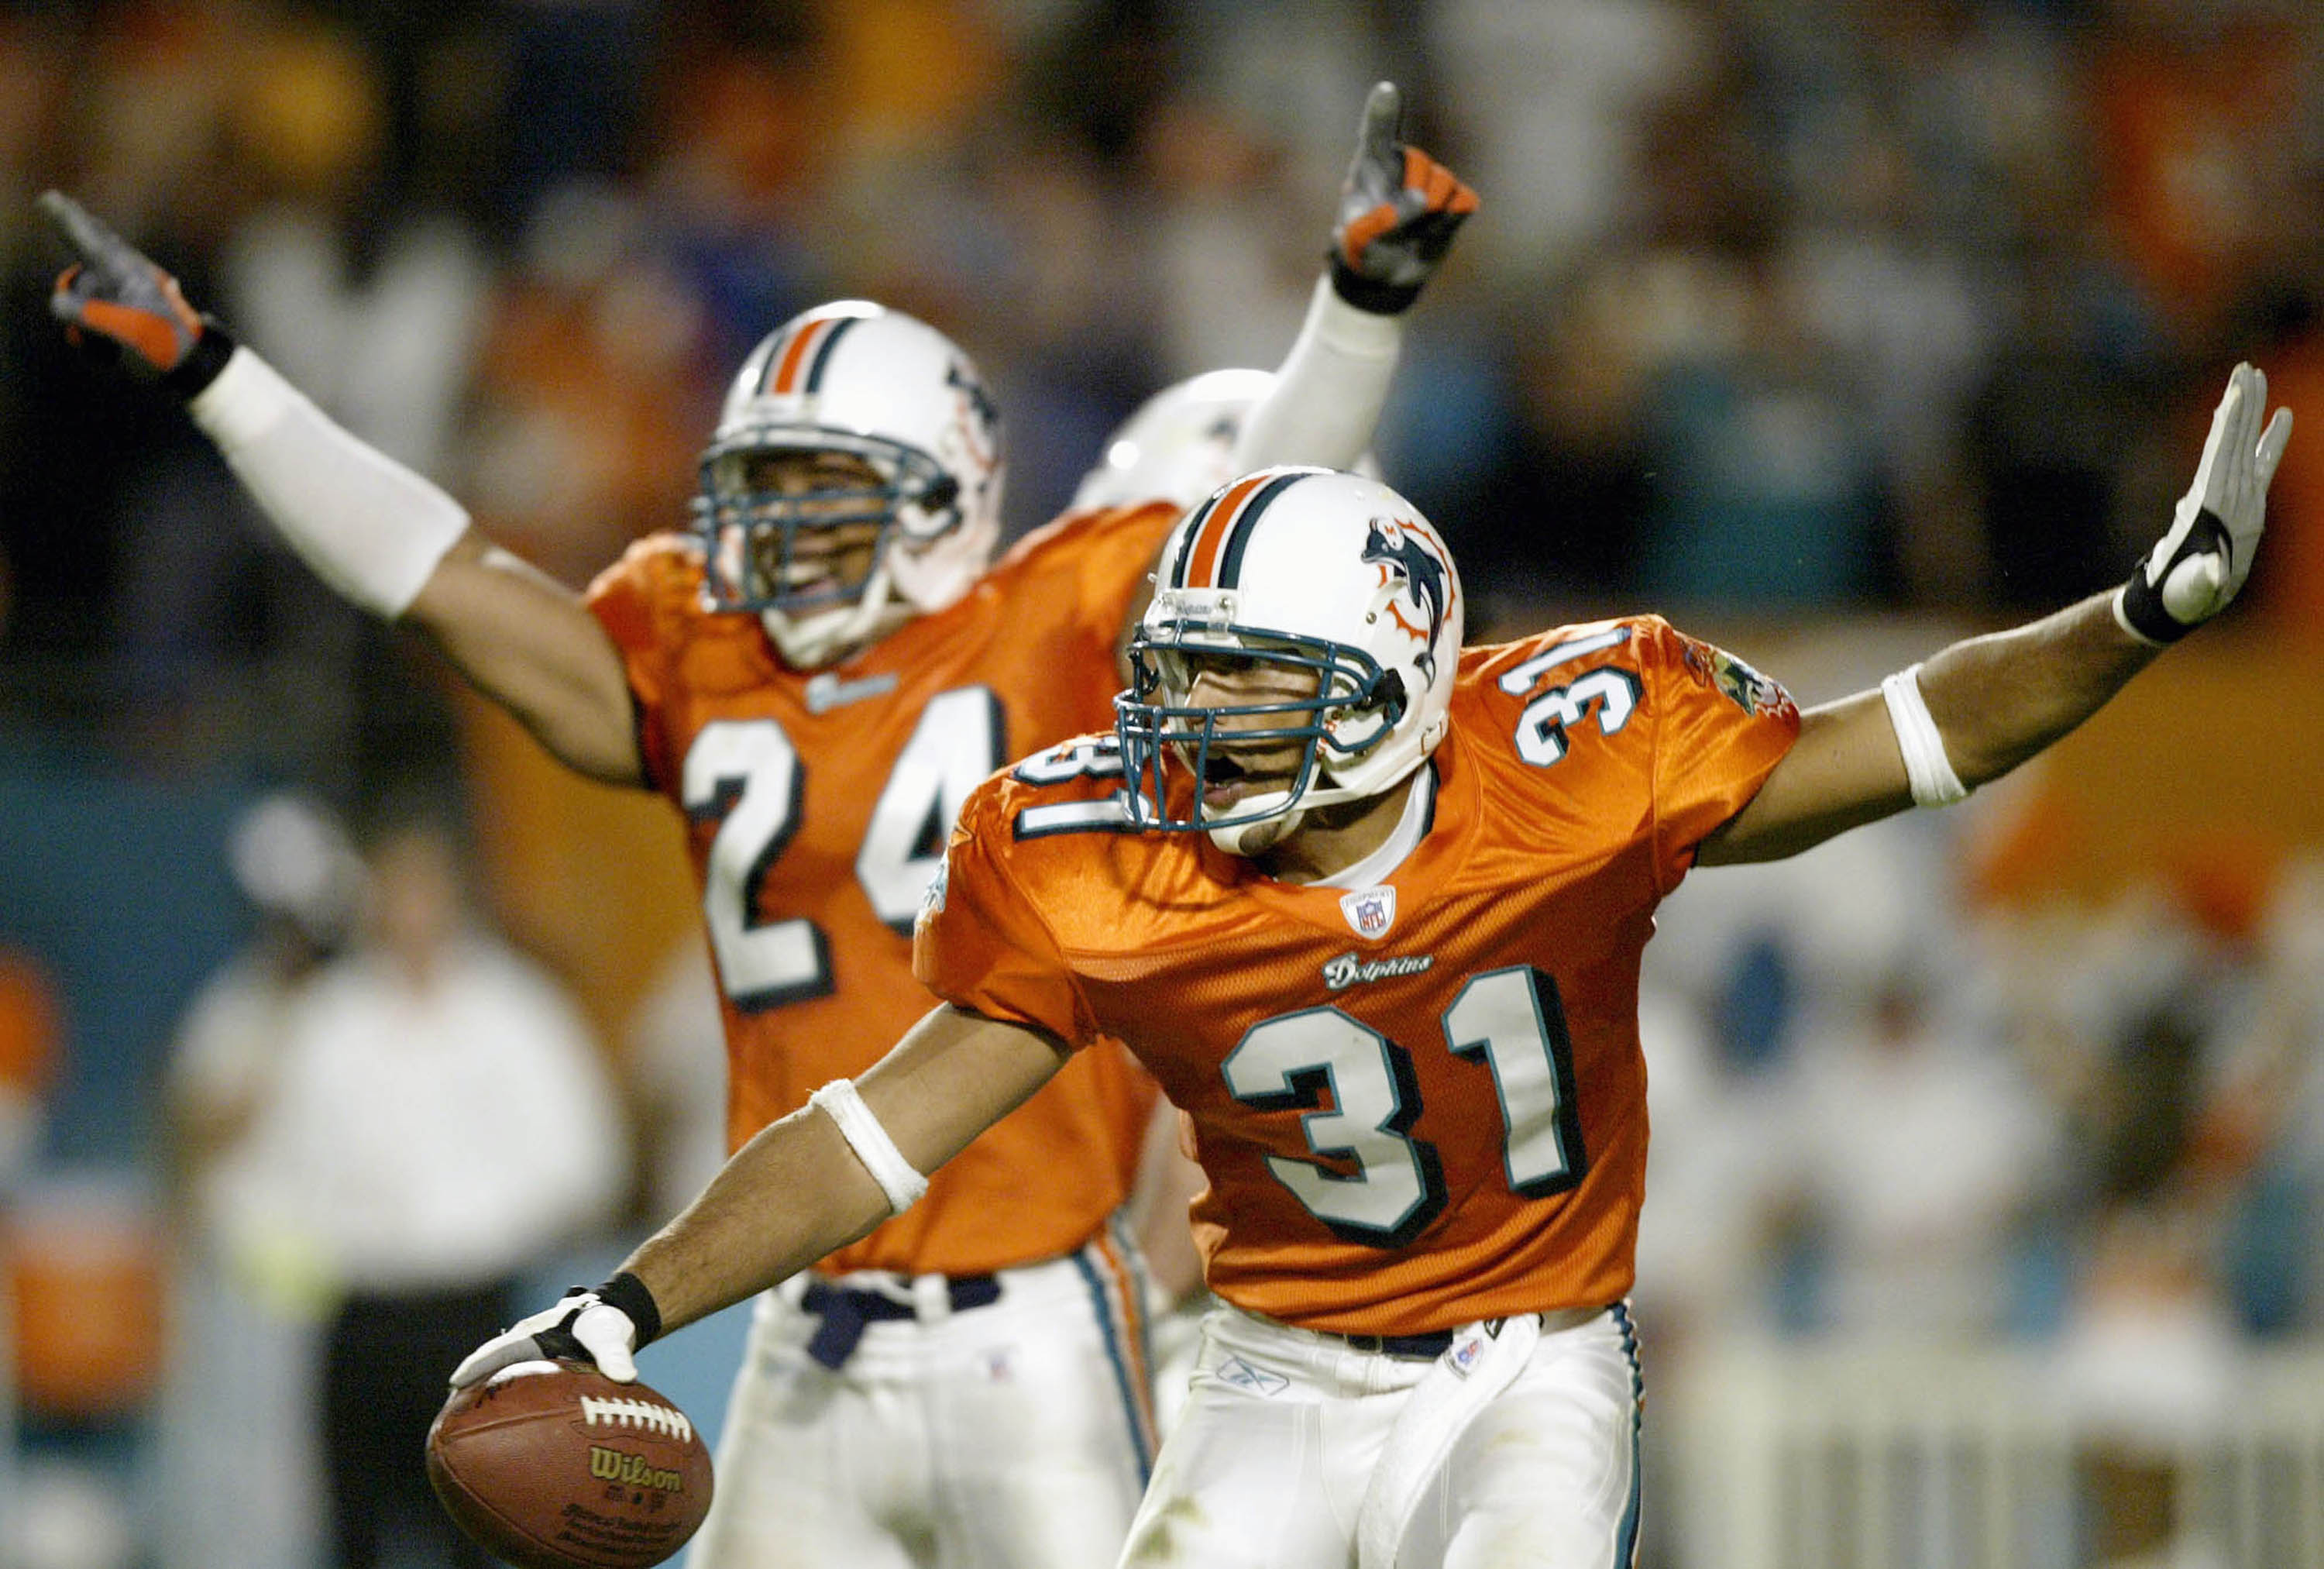 MIAMI - NOVEMBER 23:  Brock Marion #31 of the Miami Dolphins celebrates an interception against the Washington Redskins late in the fourth quarter November 23, 2003 at Pro Player Stadium in Miami, Florida. (Photo by Matthew Stockman/Getty Images)